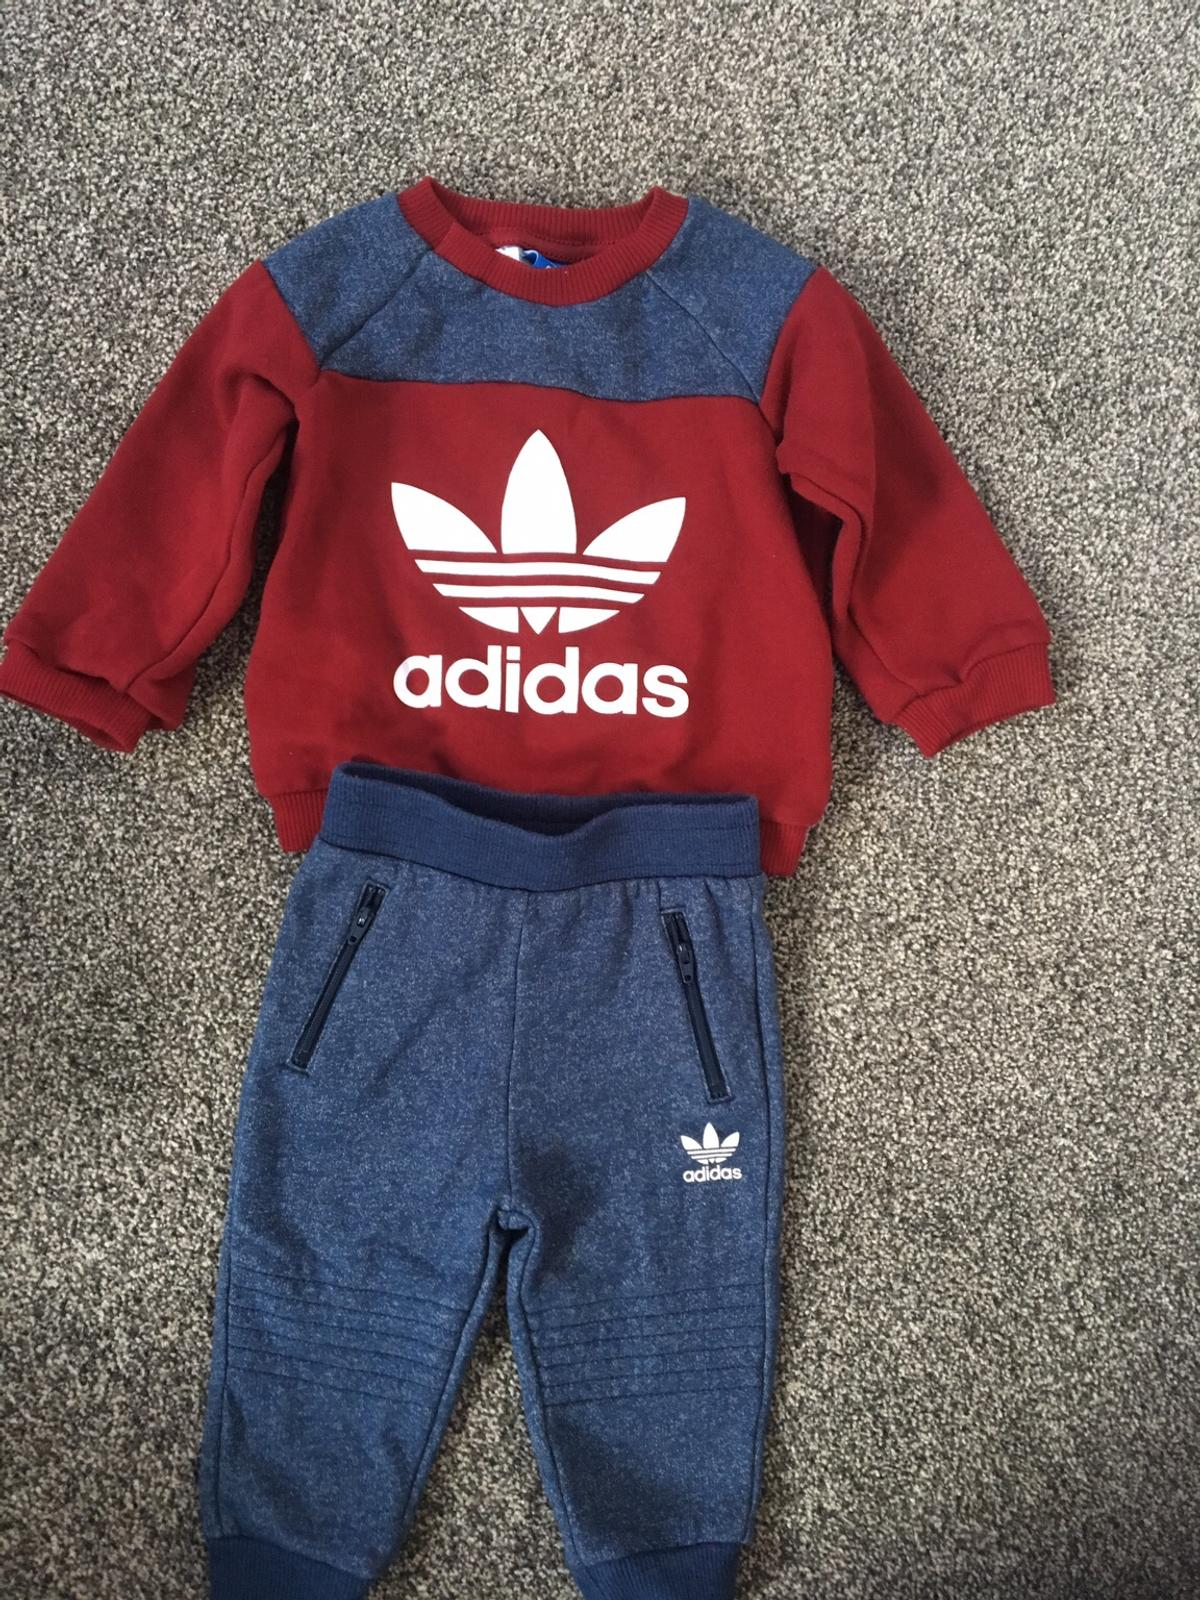 8ae293010f24 Baby boy adidas tracksuit 6-9months in B30 Birmingham for £10.00 for ...